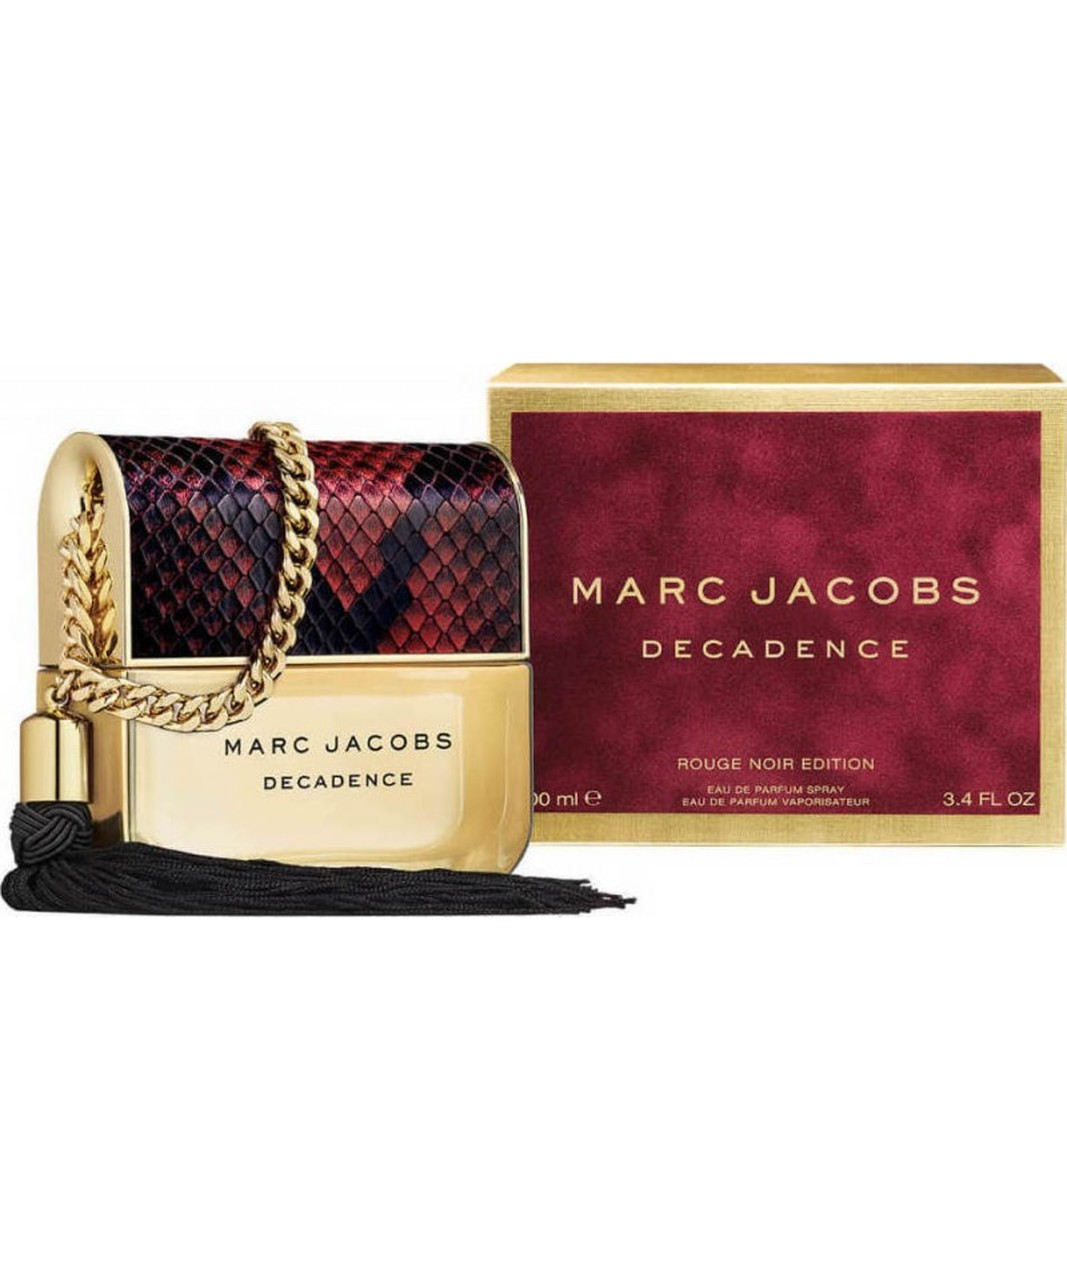 Marc Jacobs Decadence Rouge Noir Edition, edp 100ml